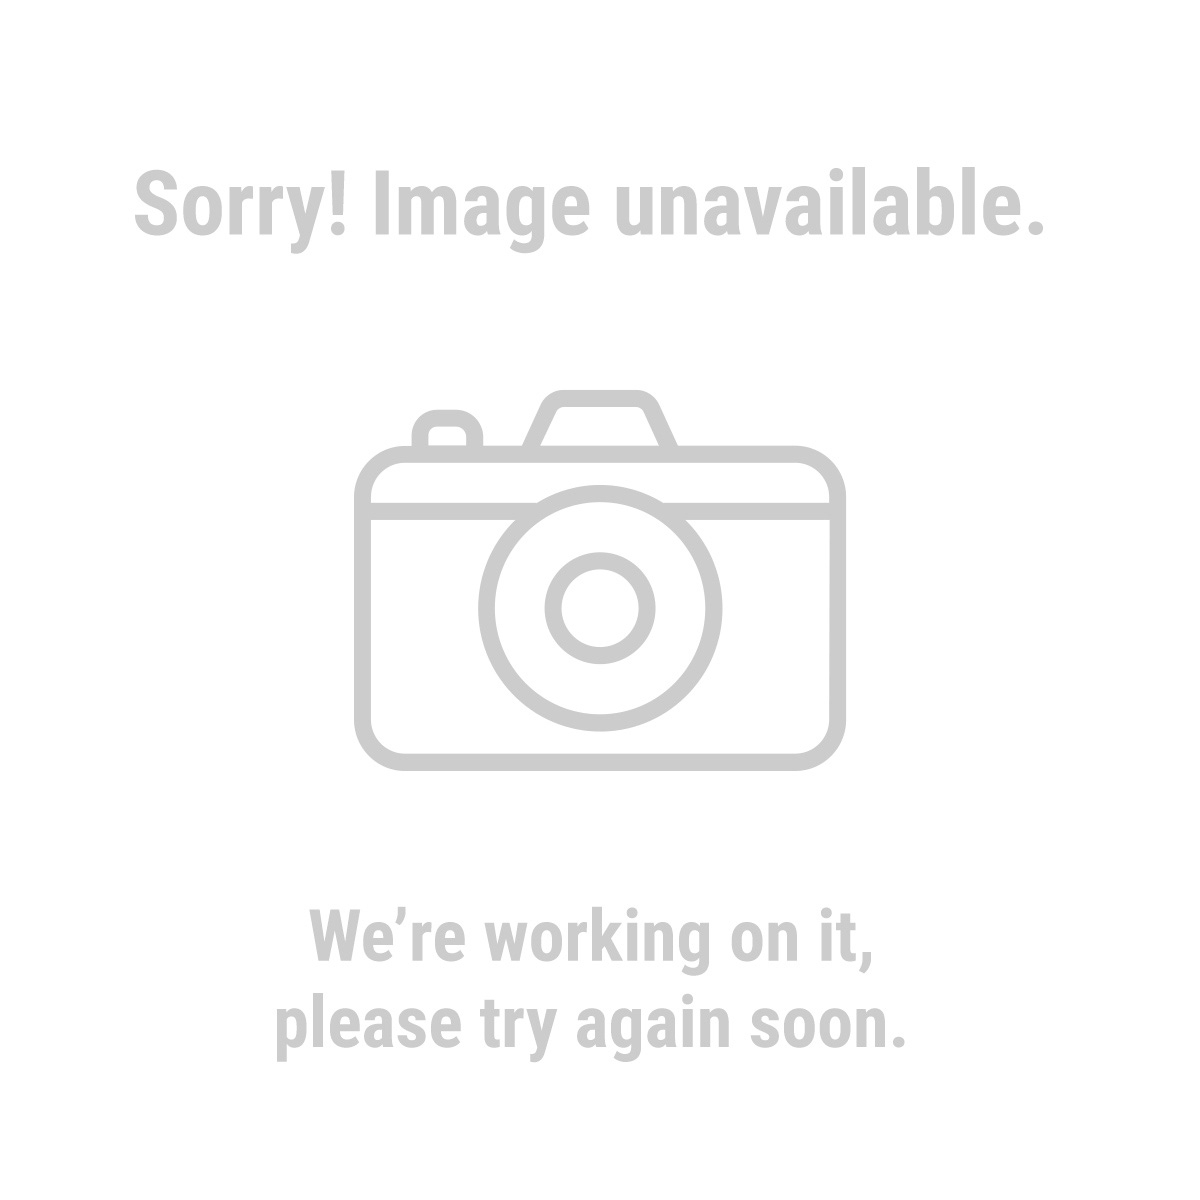 Magnetic Angle Indicator : Angle finder w dial gauge